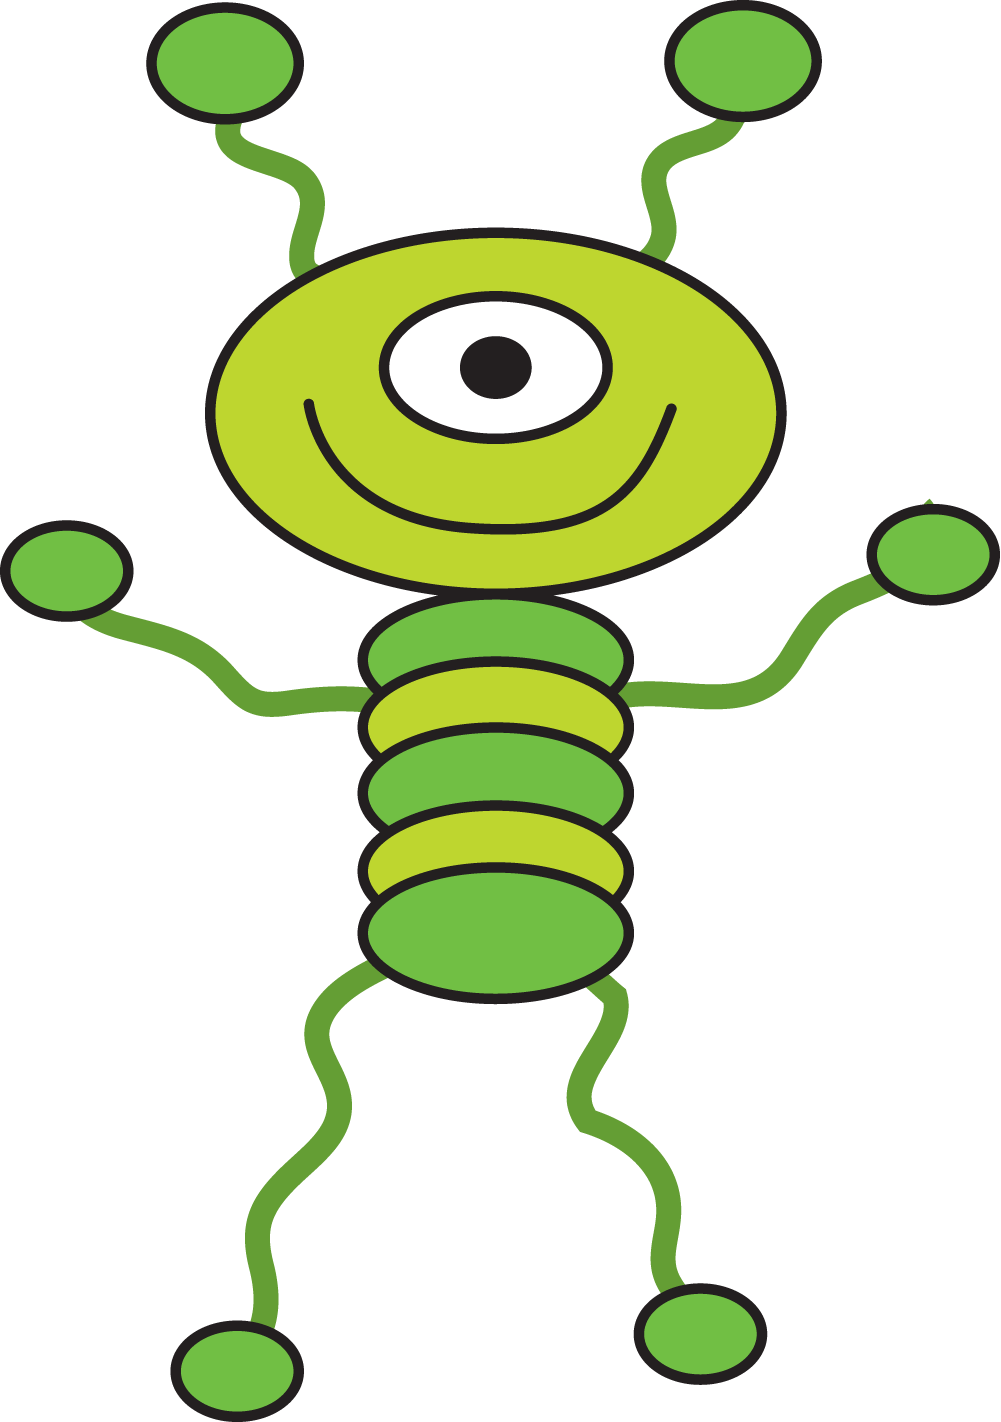 Memories clipart life. Image of alien outerspace